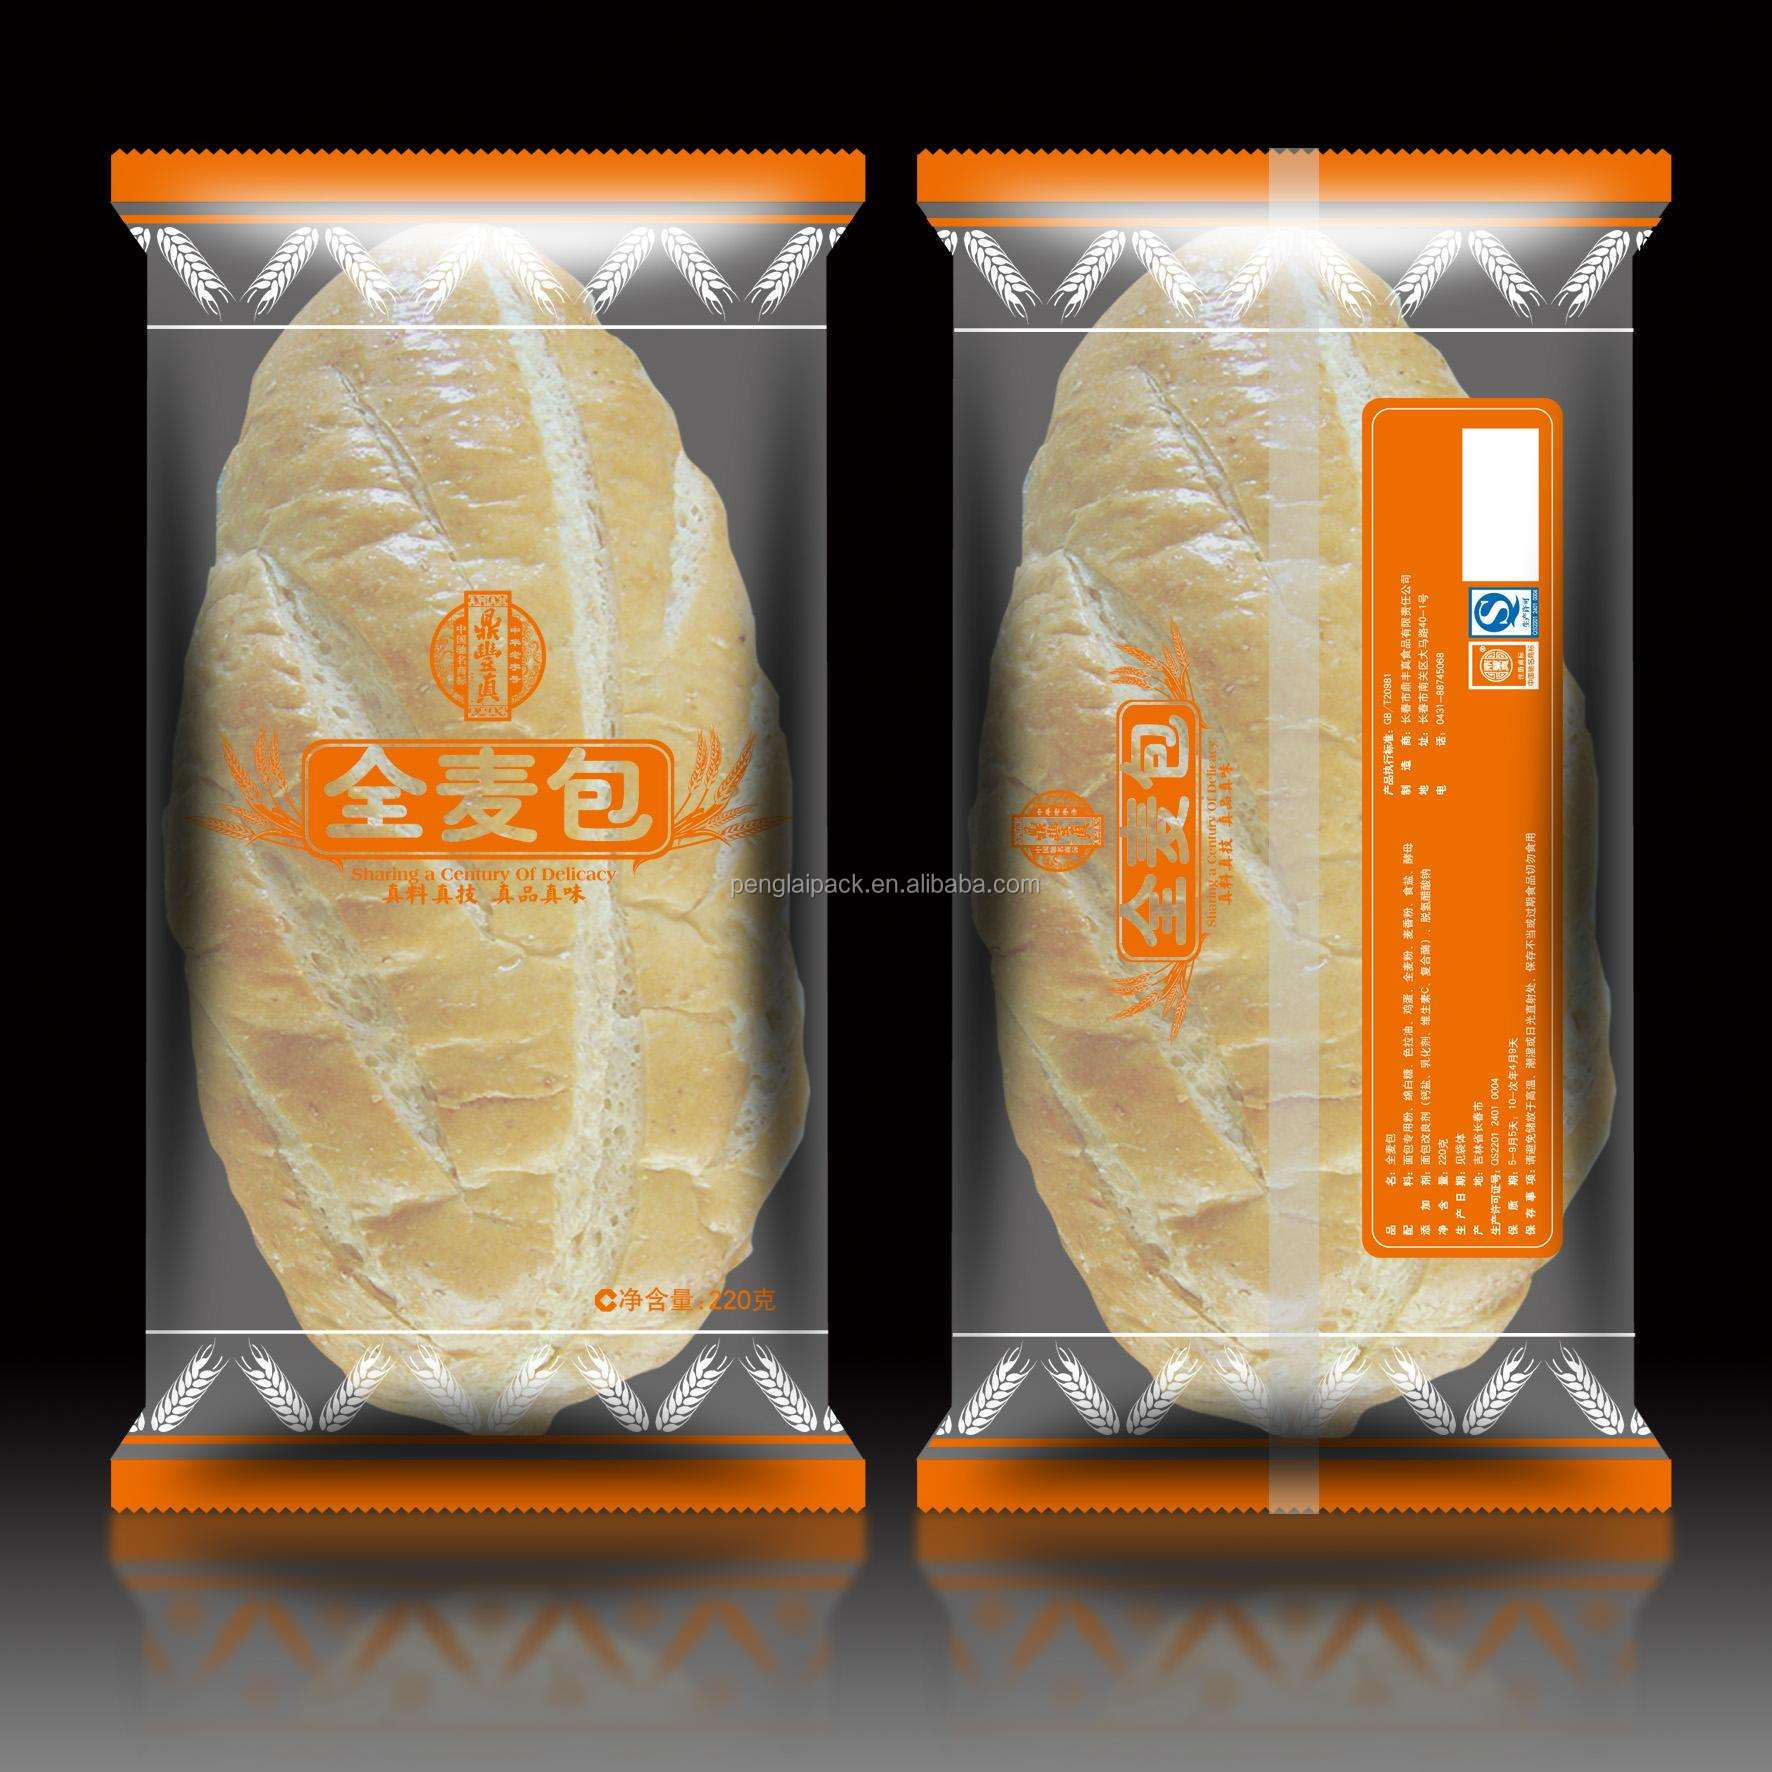 Pillow Pack Egg Roll Wrap Equipment Price Horizontal Flow Toast Packaging Wrapper Automatic Biscuit Food Packing Machine